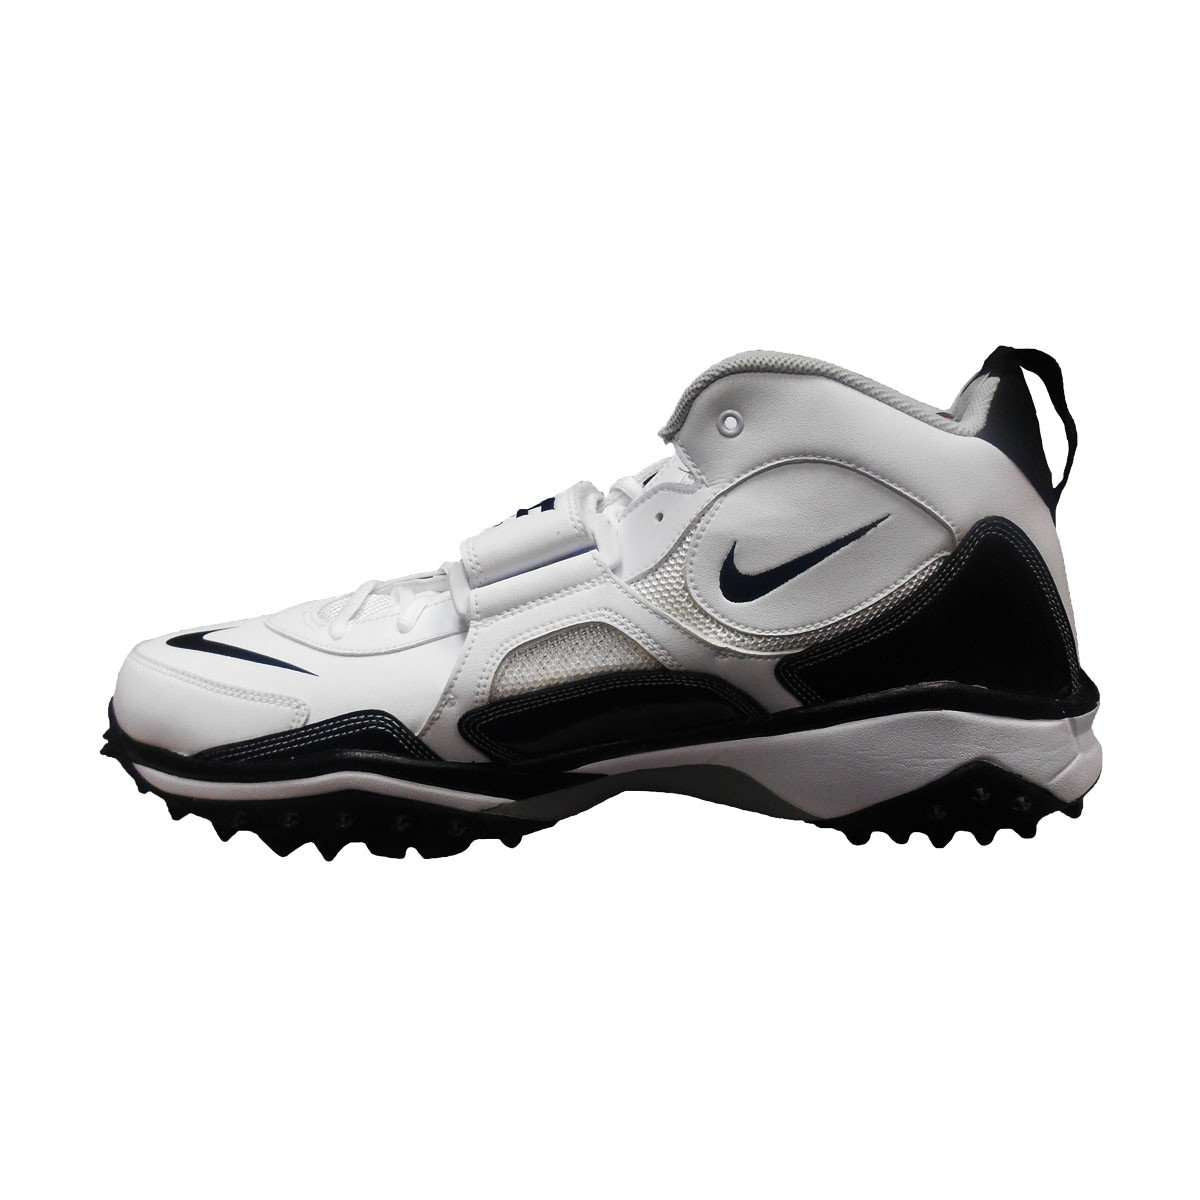 ... Nike Zoom Code Destroyer Wide Football Cleats - League Outfitters ... f357dbc74b97